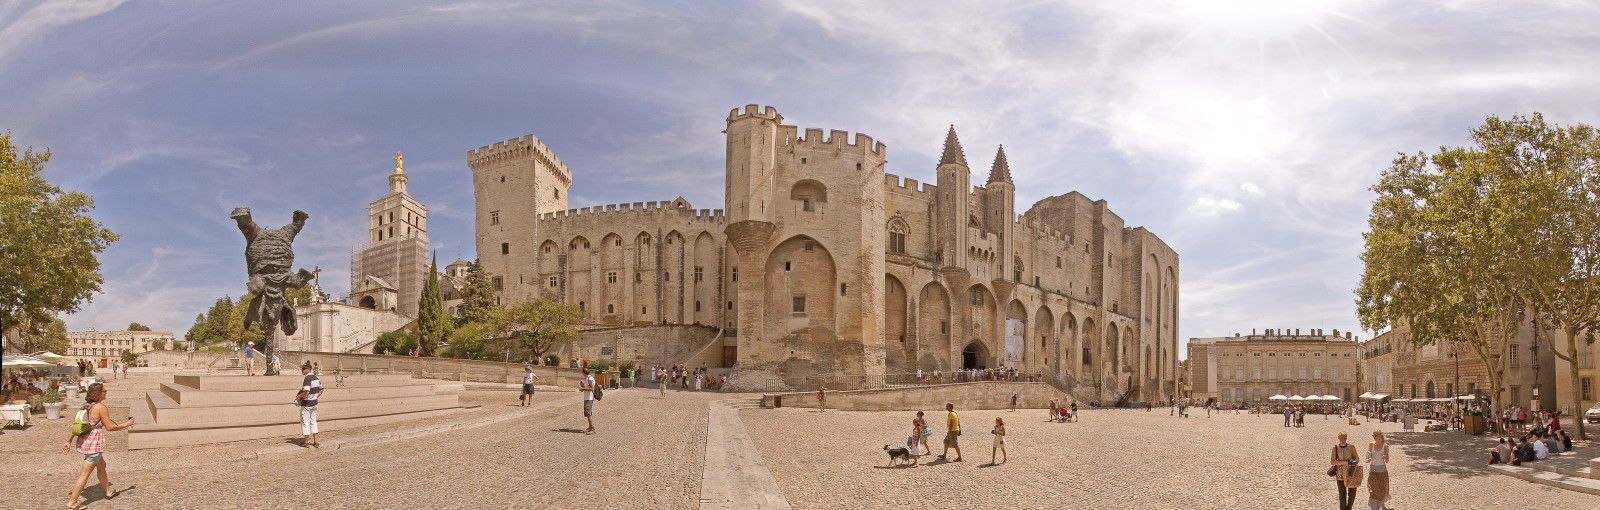 Tours One day in Provence - Provenza - TOURS REGIONALES